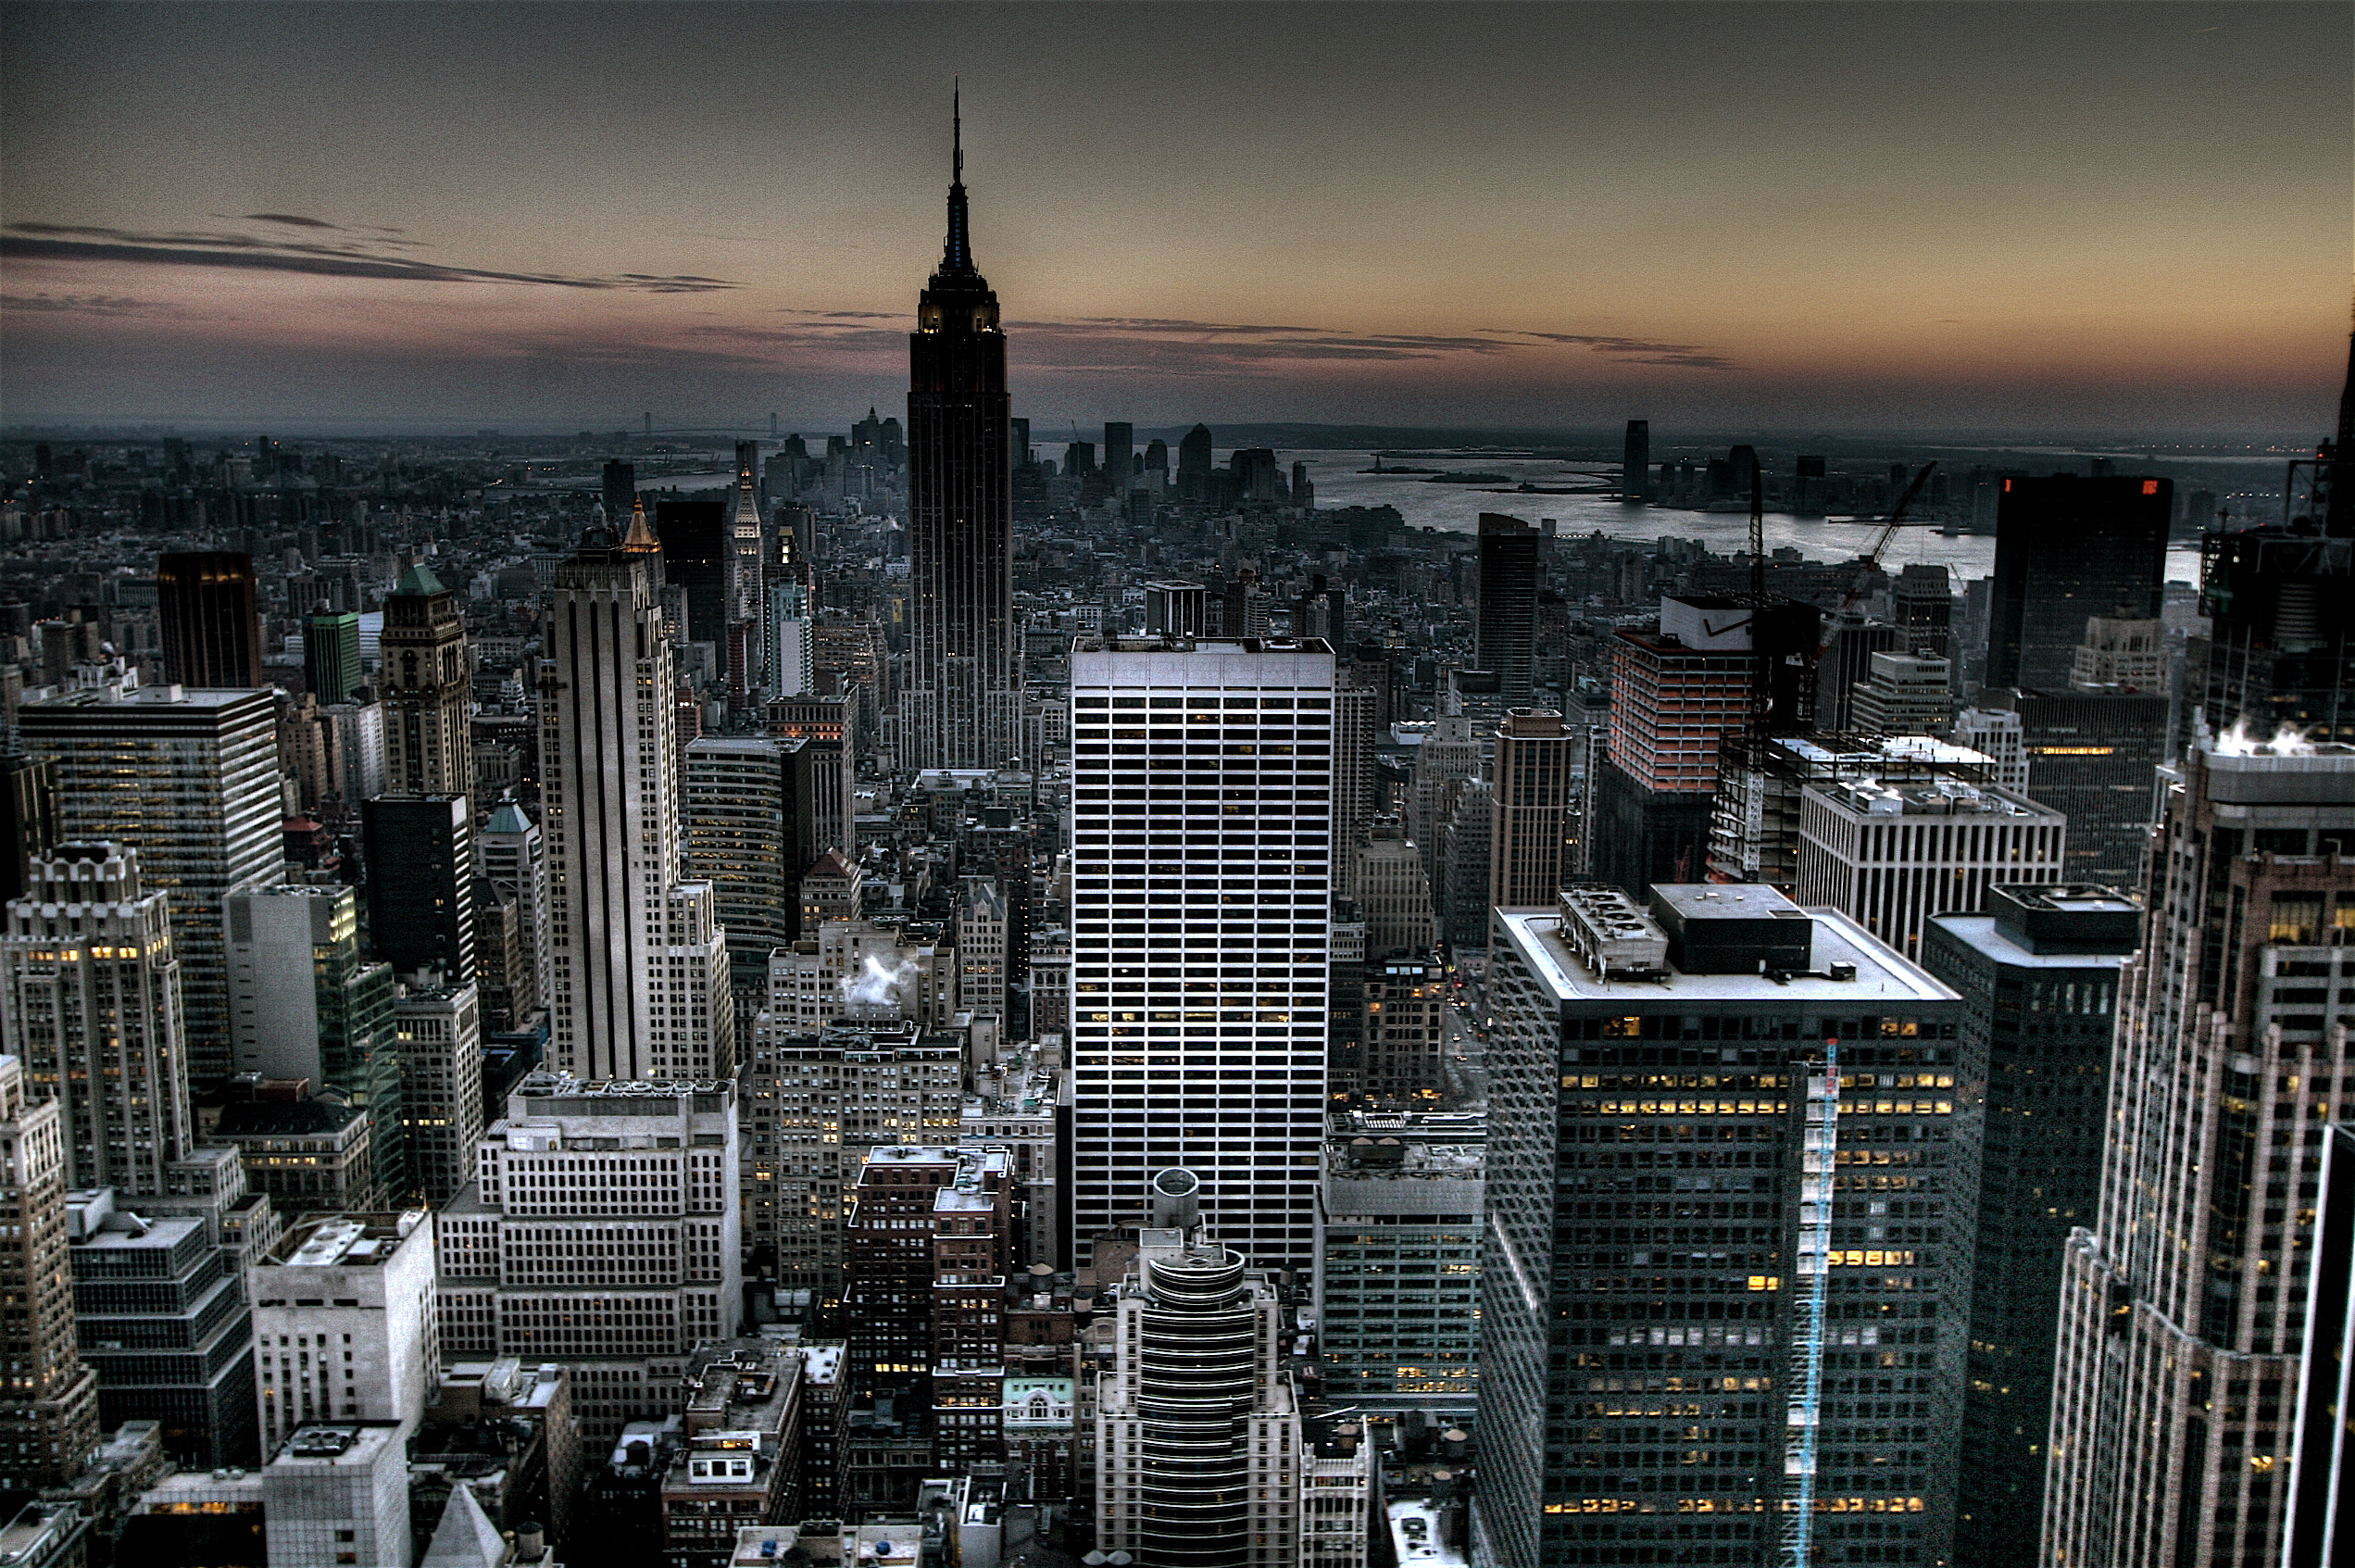 New York City Wallpaper   HD Wallpapers Backgrounds of 2543x1693